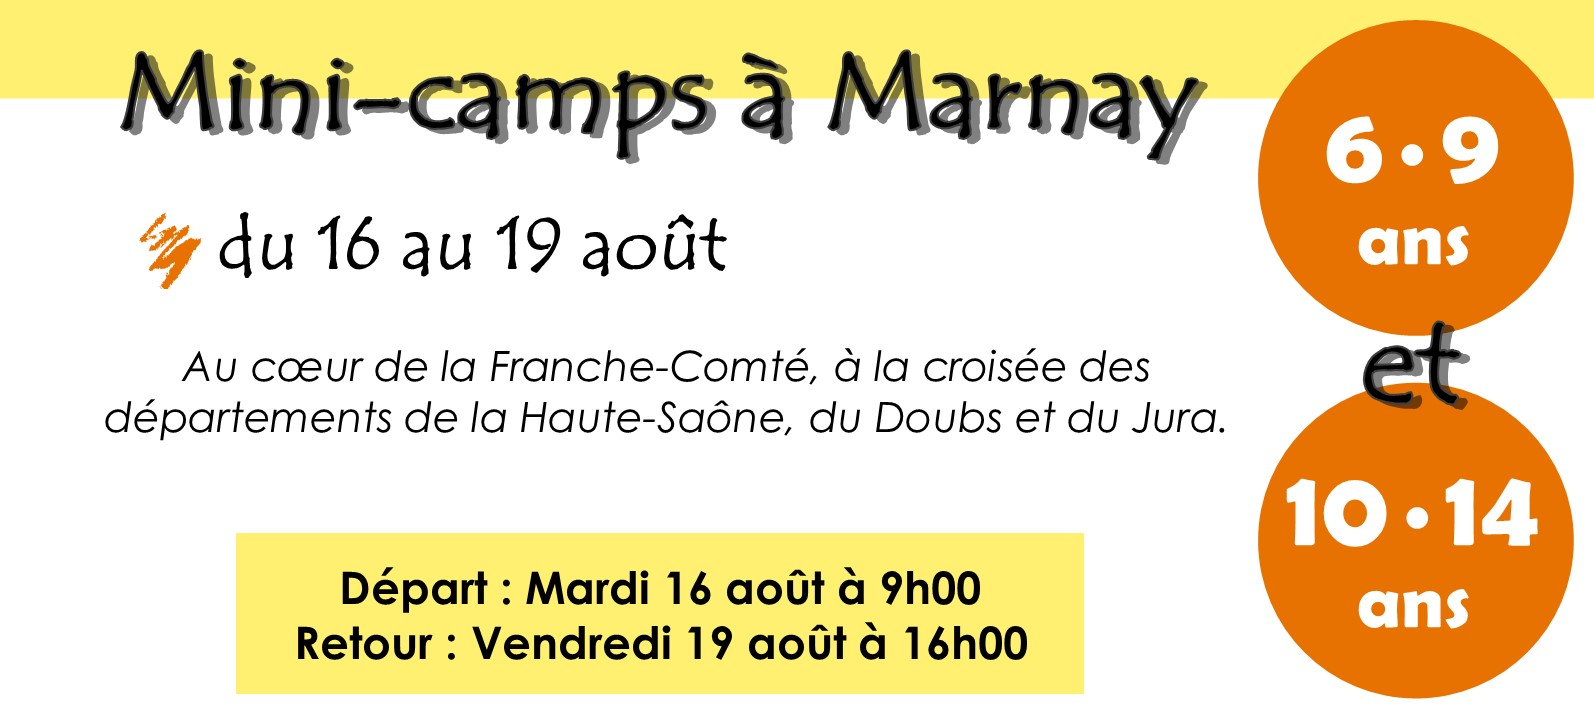 ENTETE MINI-CAMPS